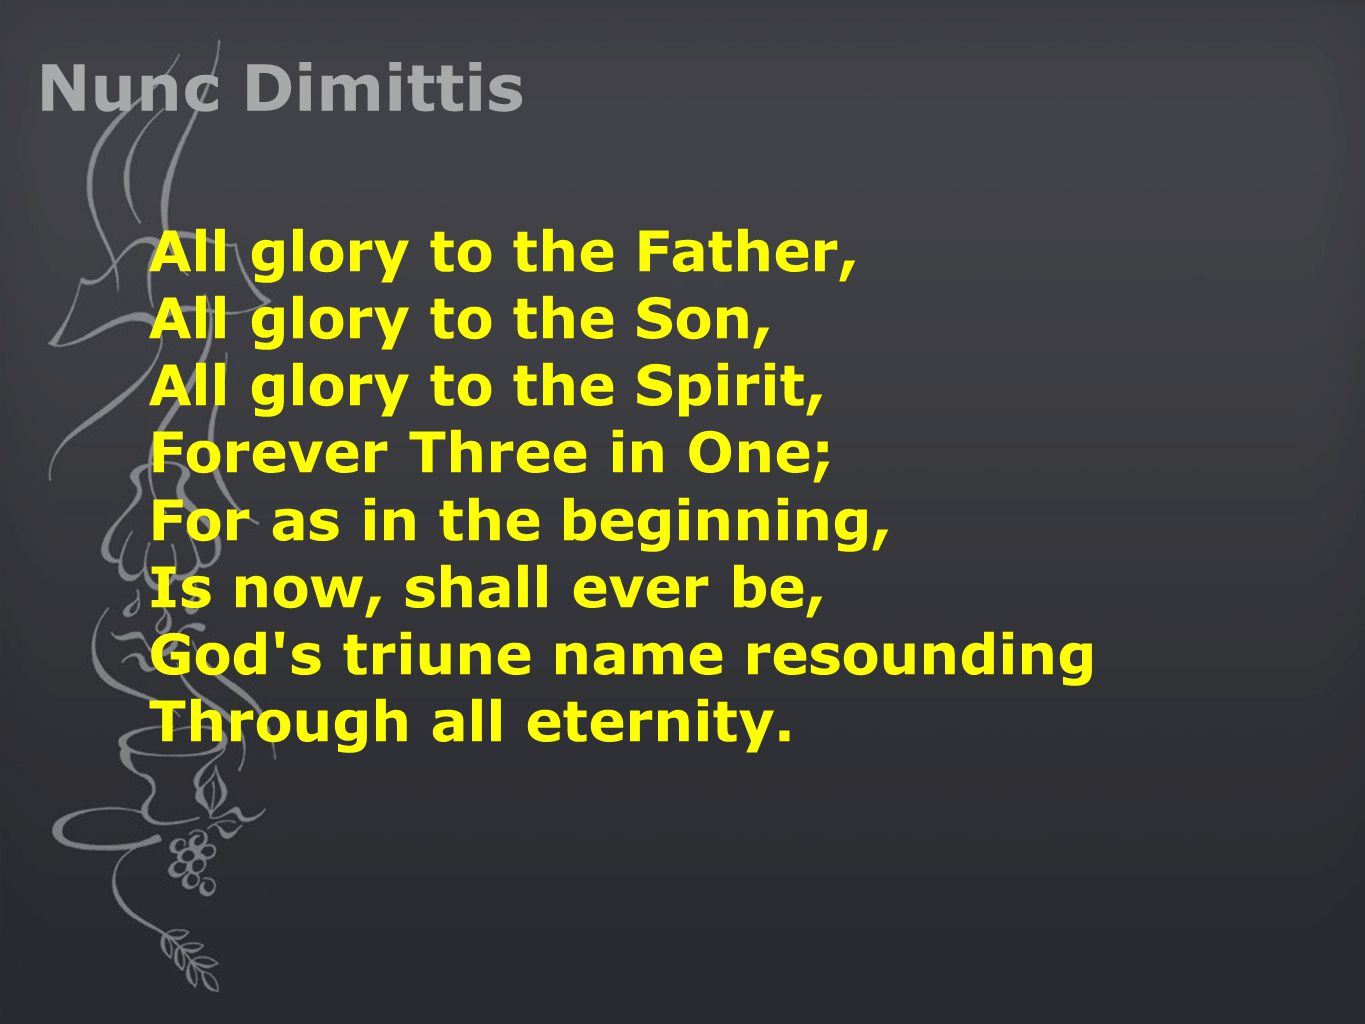 Nunc Dimittis All glory to the Father, All glory to the Son, All glory to the Spirit, Forever Three in One; For as in the beginning, Is now, shall ever be, God s triune name resounding Through all eternity.